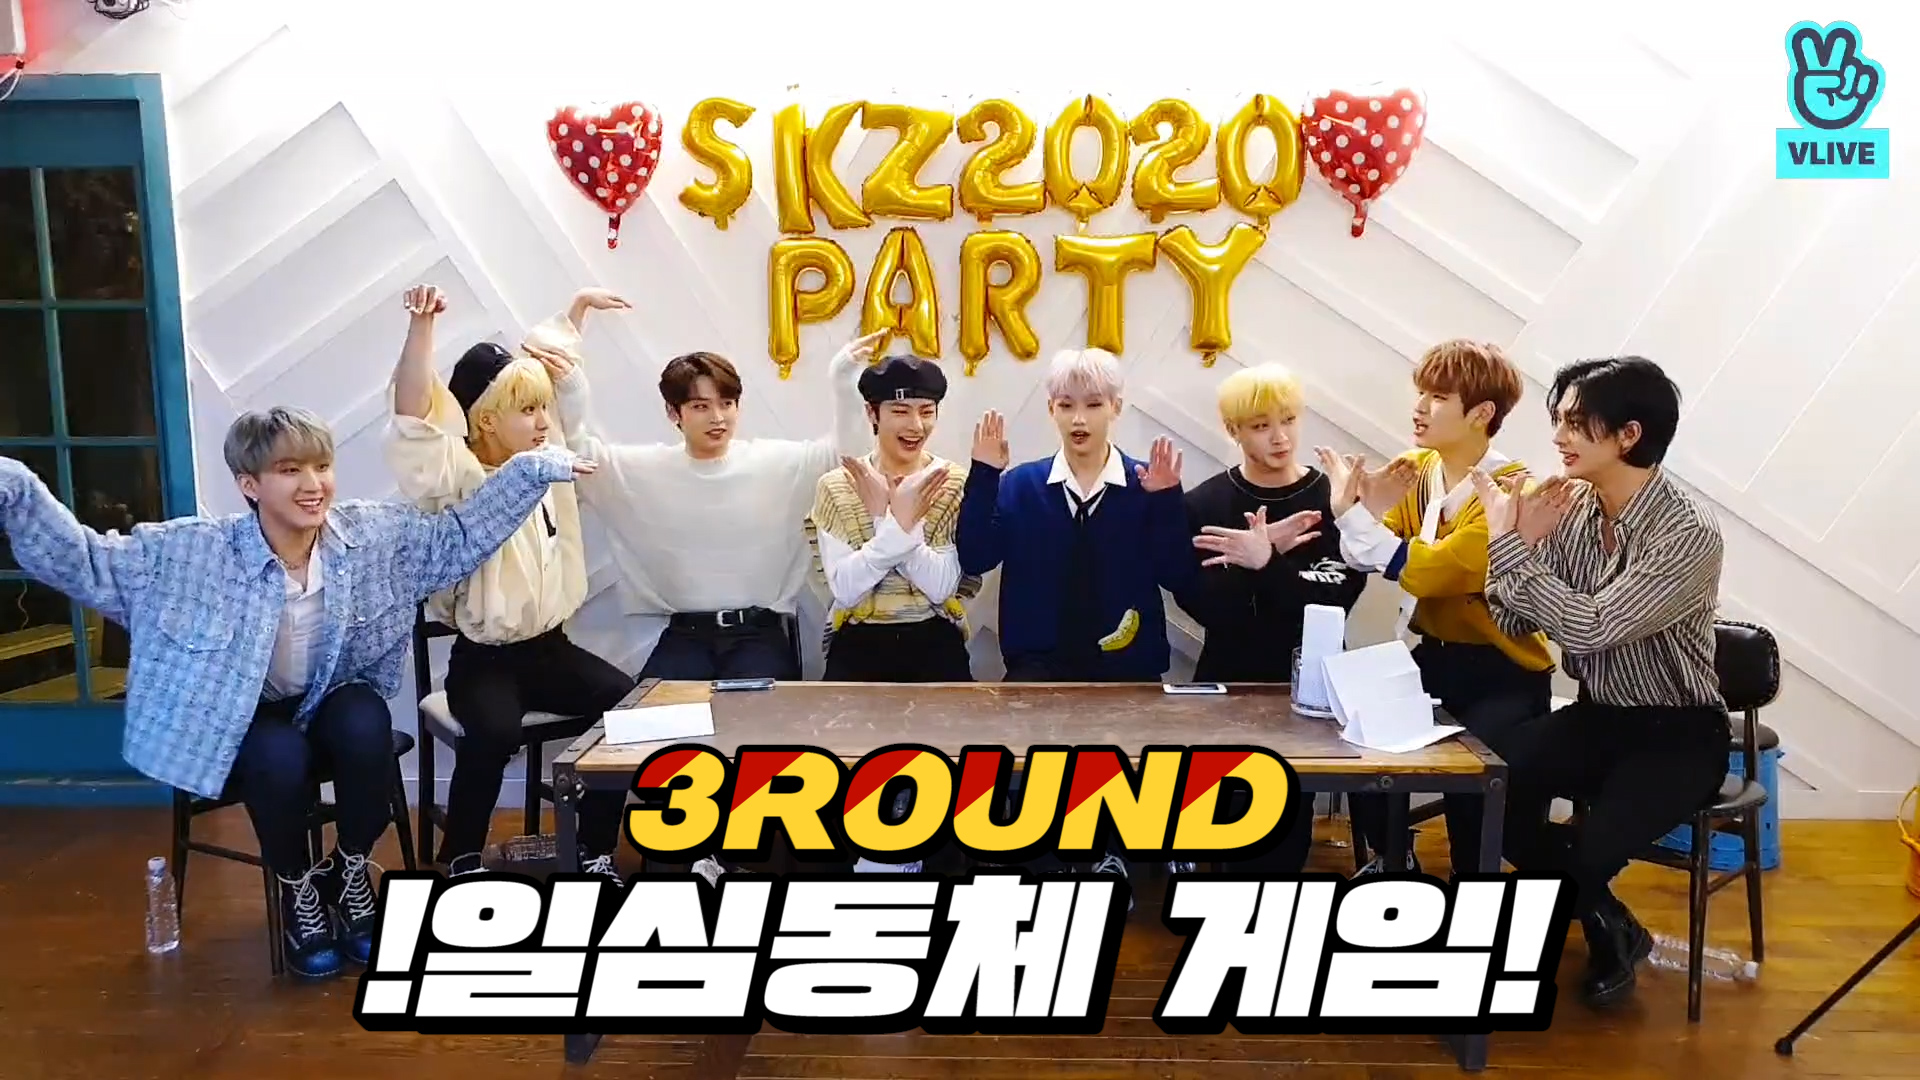 [Stray Kids] 우리키즈 귀여움으로 일심동체니까 정답 인정!!🙋‍♀️💕 (Stray Kids's quiz about their songs)